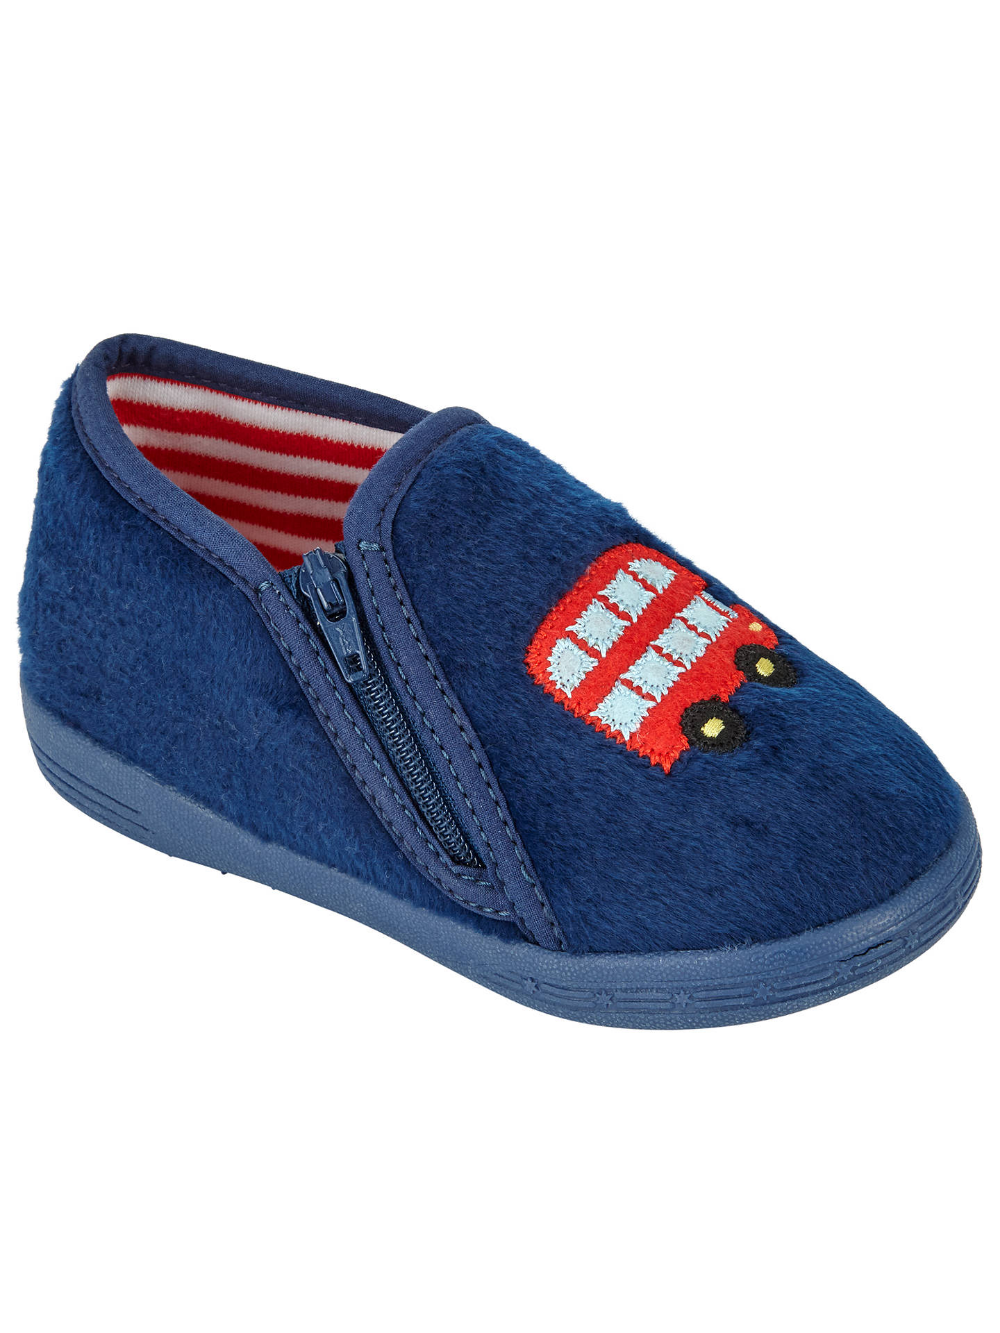 Partners Baby Bus Slippers, Navy | Toddler shoes, John ...